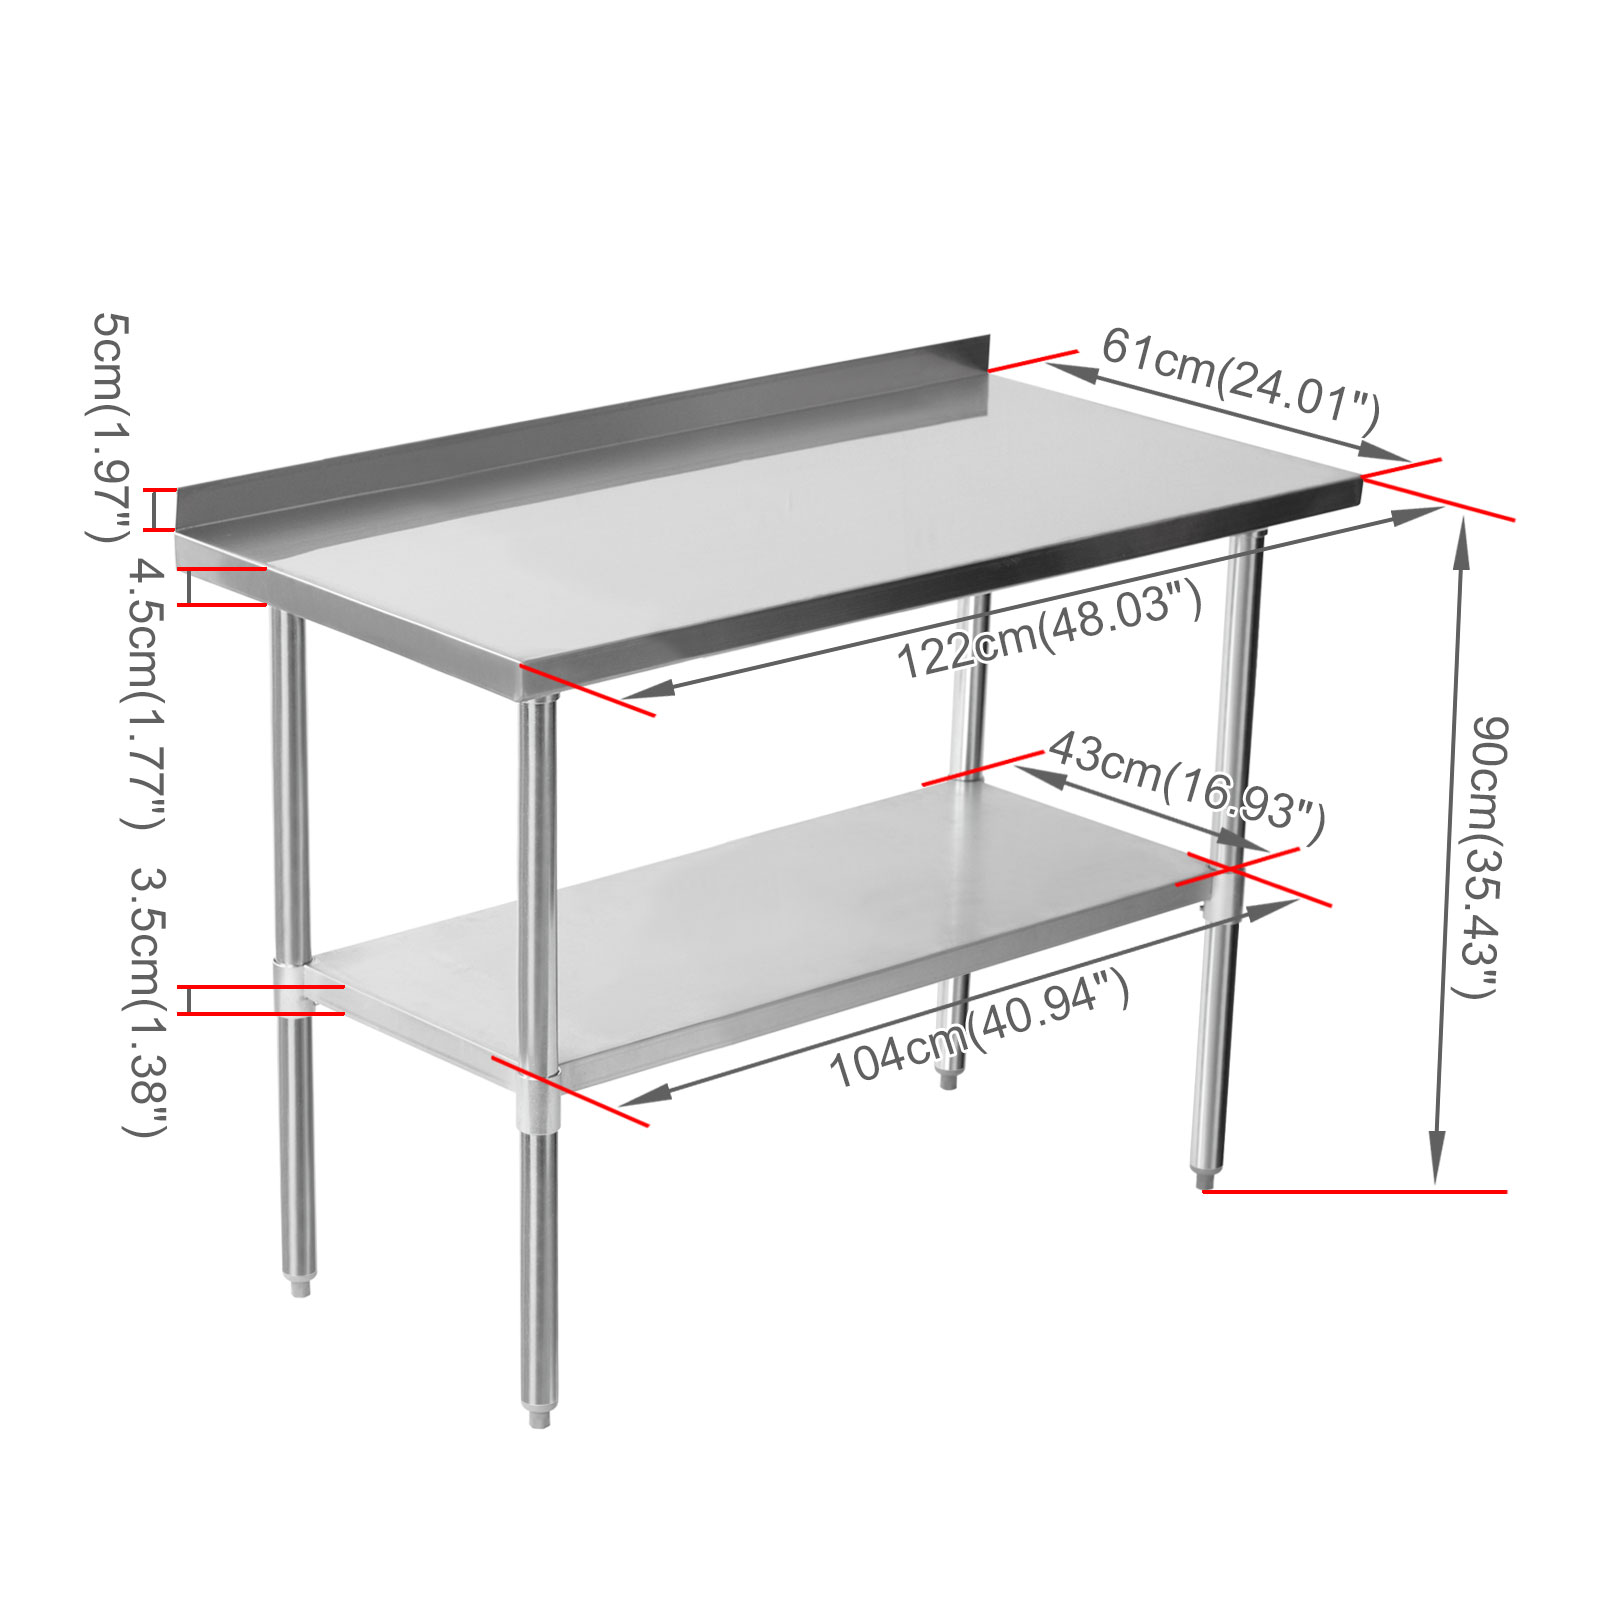 Commercial Stainless Steel Work Bench Kitchen Catering Table Shelf Backsplash